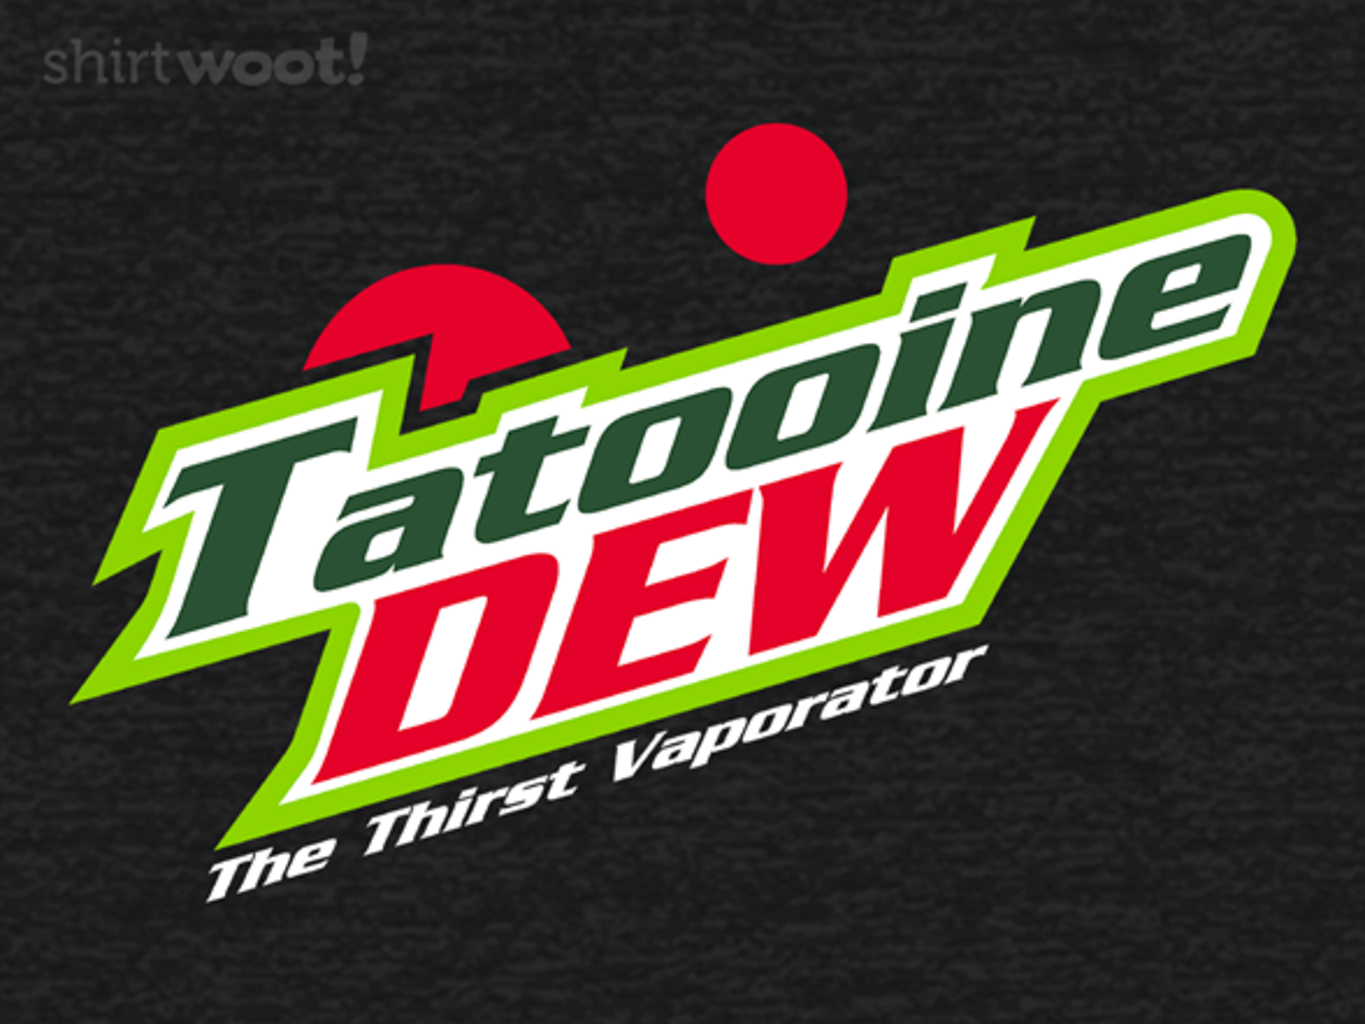 Woot!: Tatooine Dew